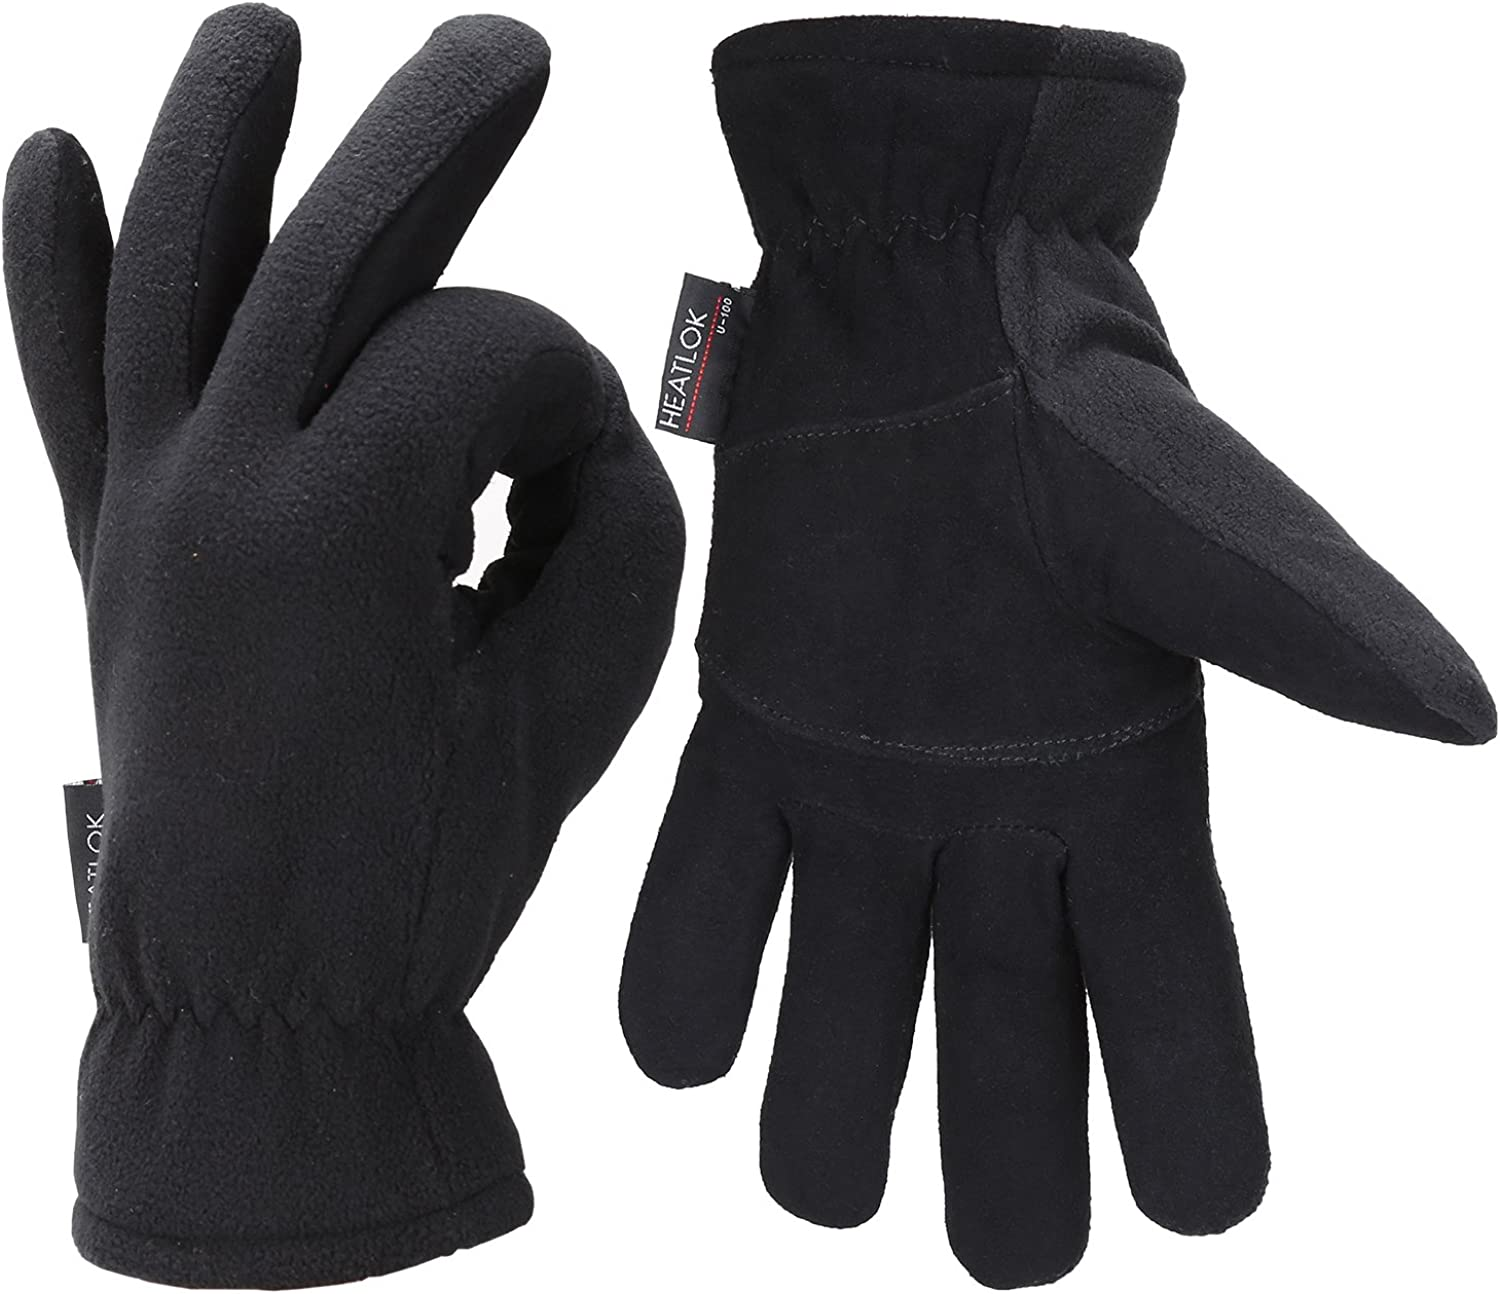 Mens Winter Gloves Cold Weather Thermal Warm Fleece Windproof Gloves for Men  at Amazon Men's Clothing store